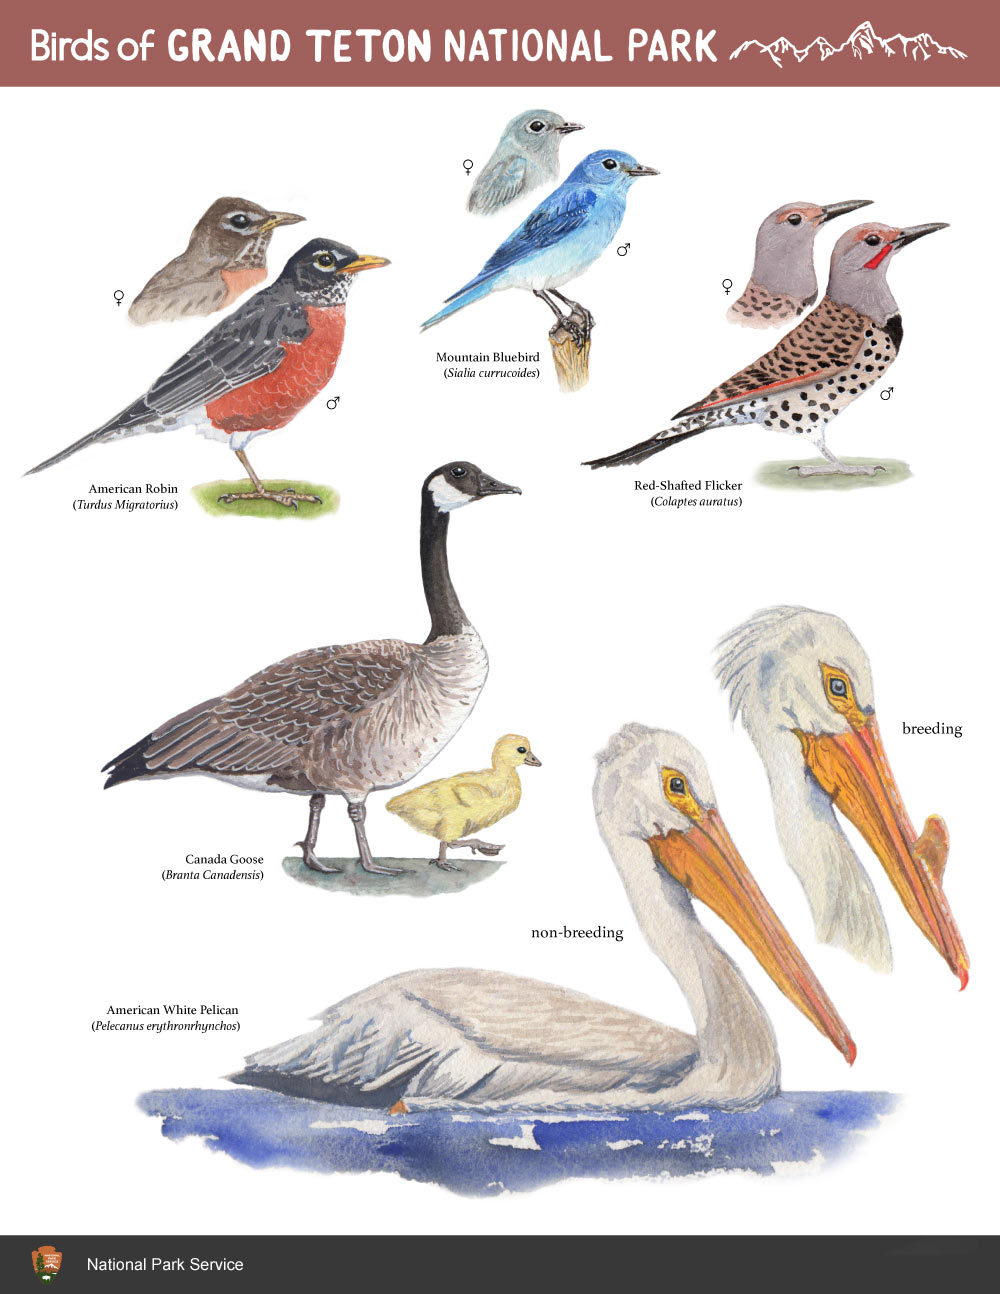 Field guide page created with watercolor, gouache, and InDesign as an assignment for CSUMB Science Illustration program.